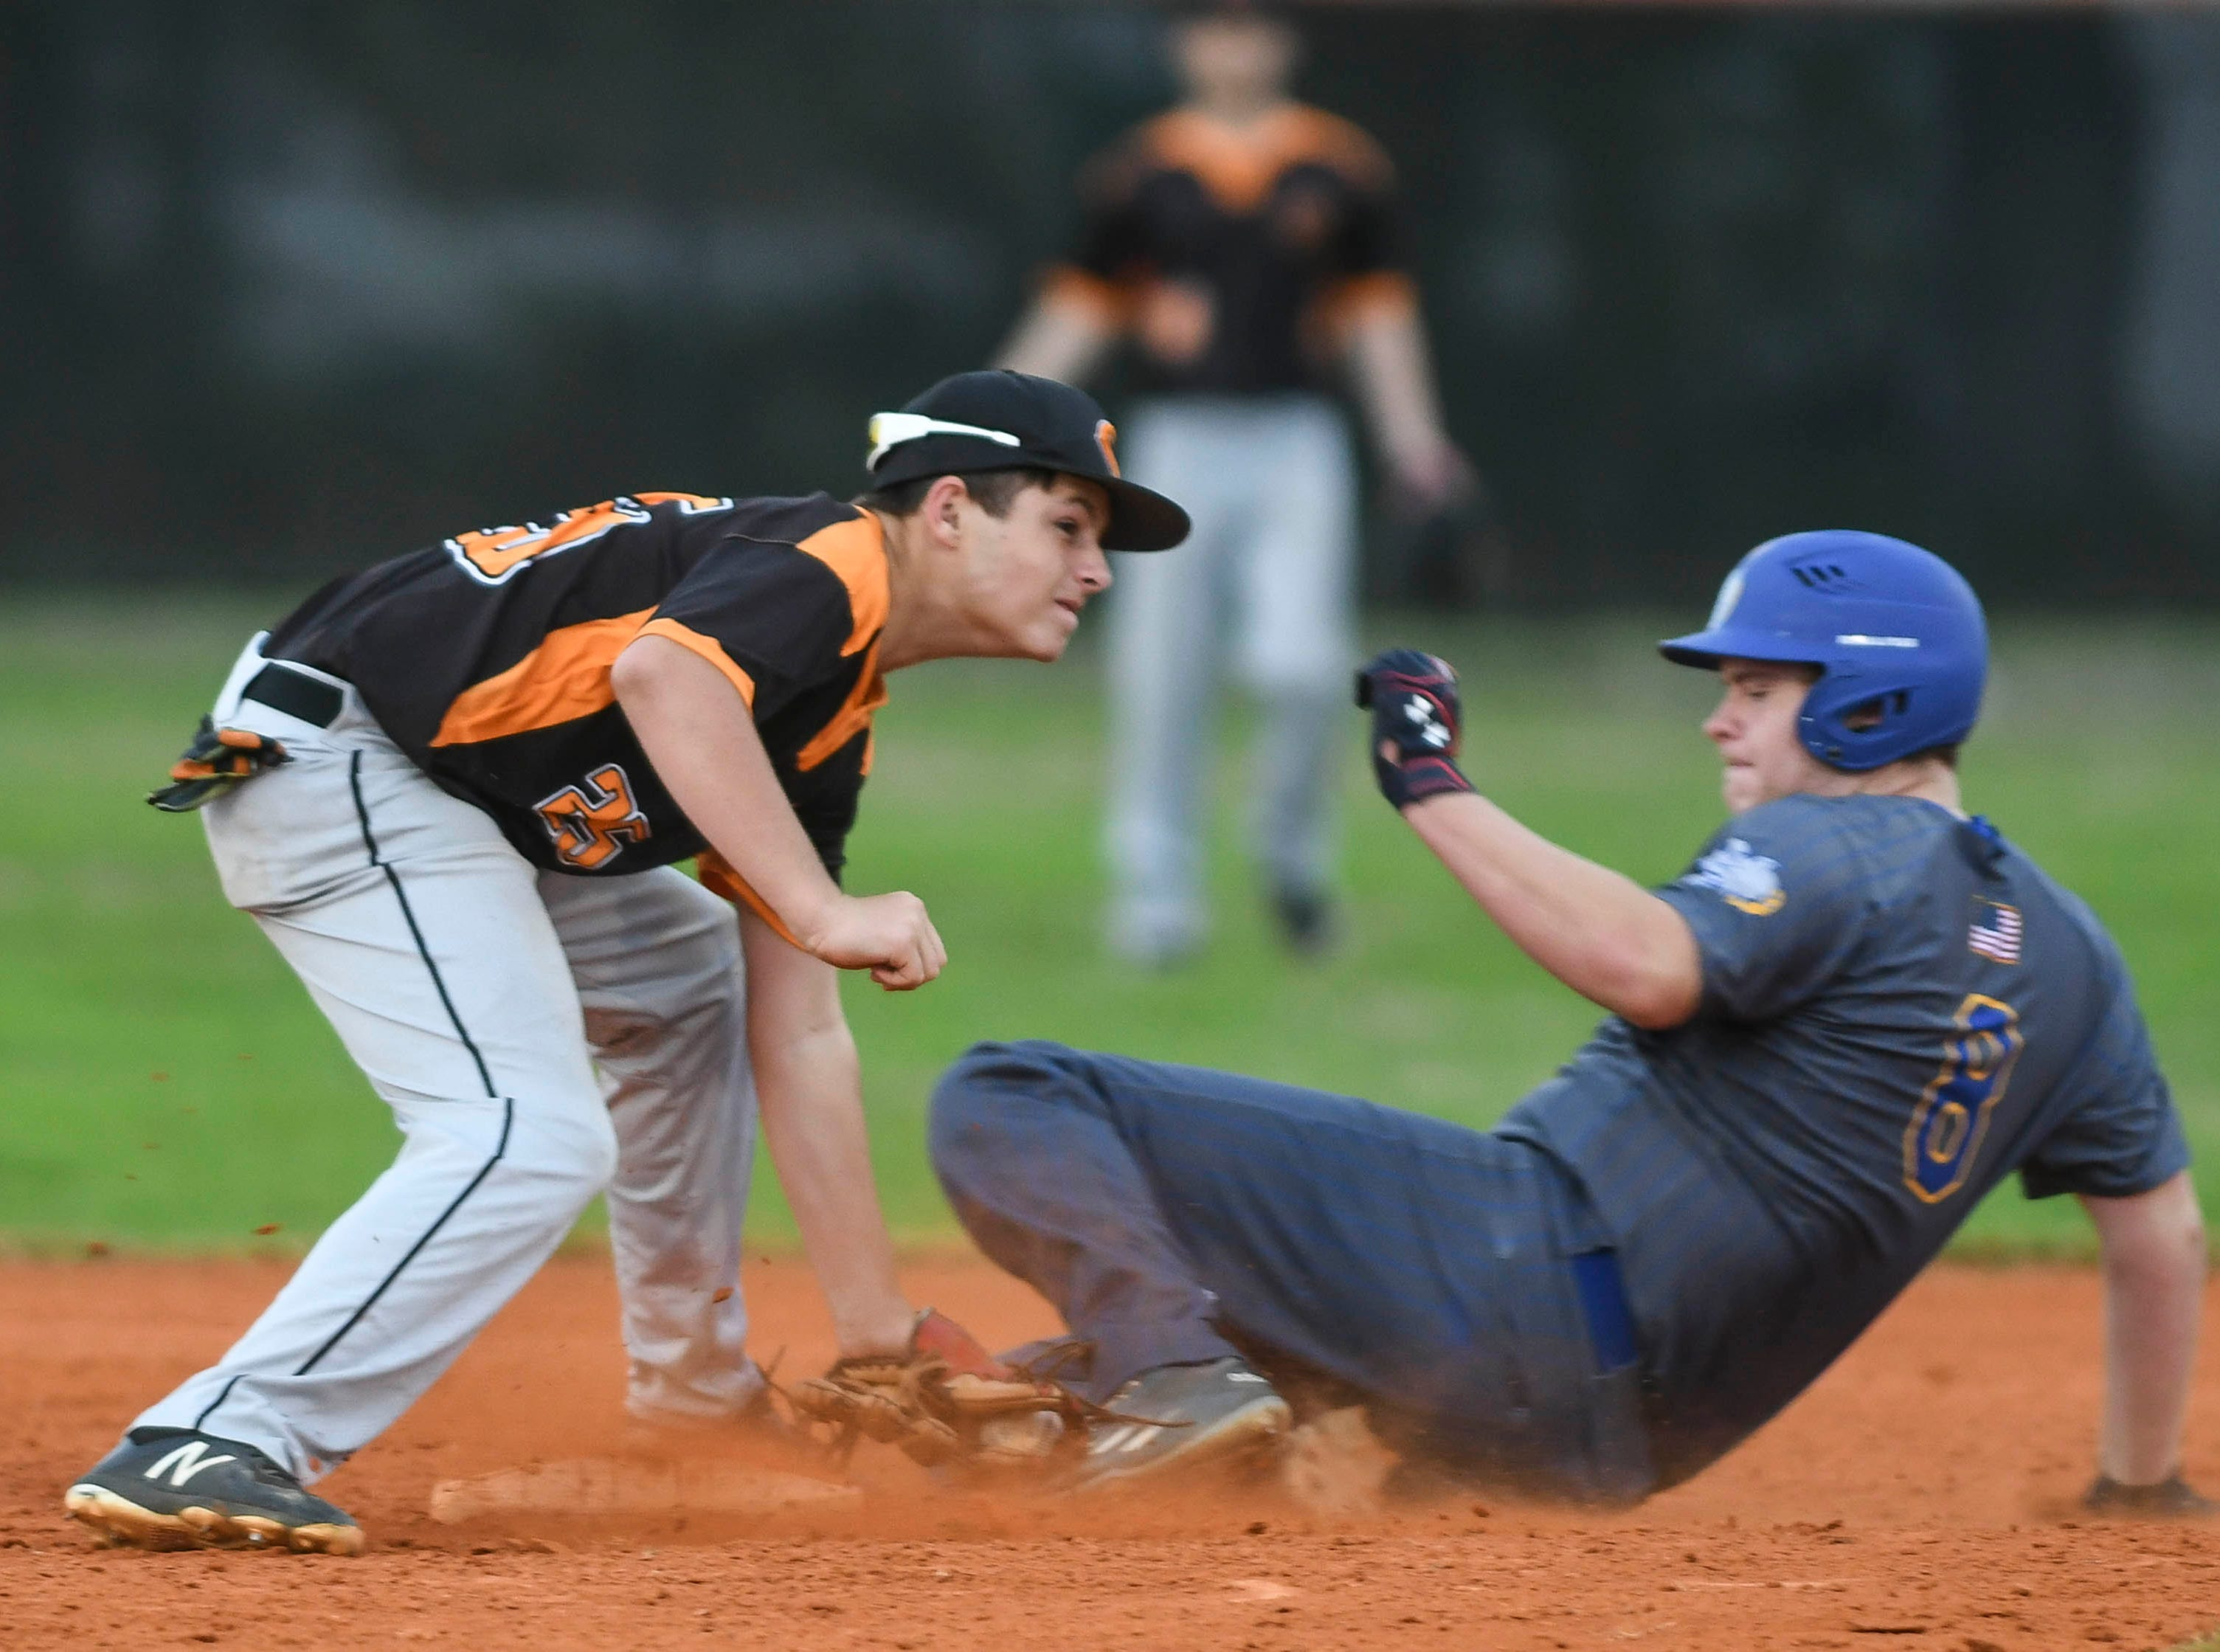 Ronnie Adams of Cocoa tags out Titusville baserunner Preston Mauzy during Friday's game in Cocoa